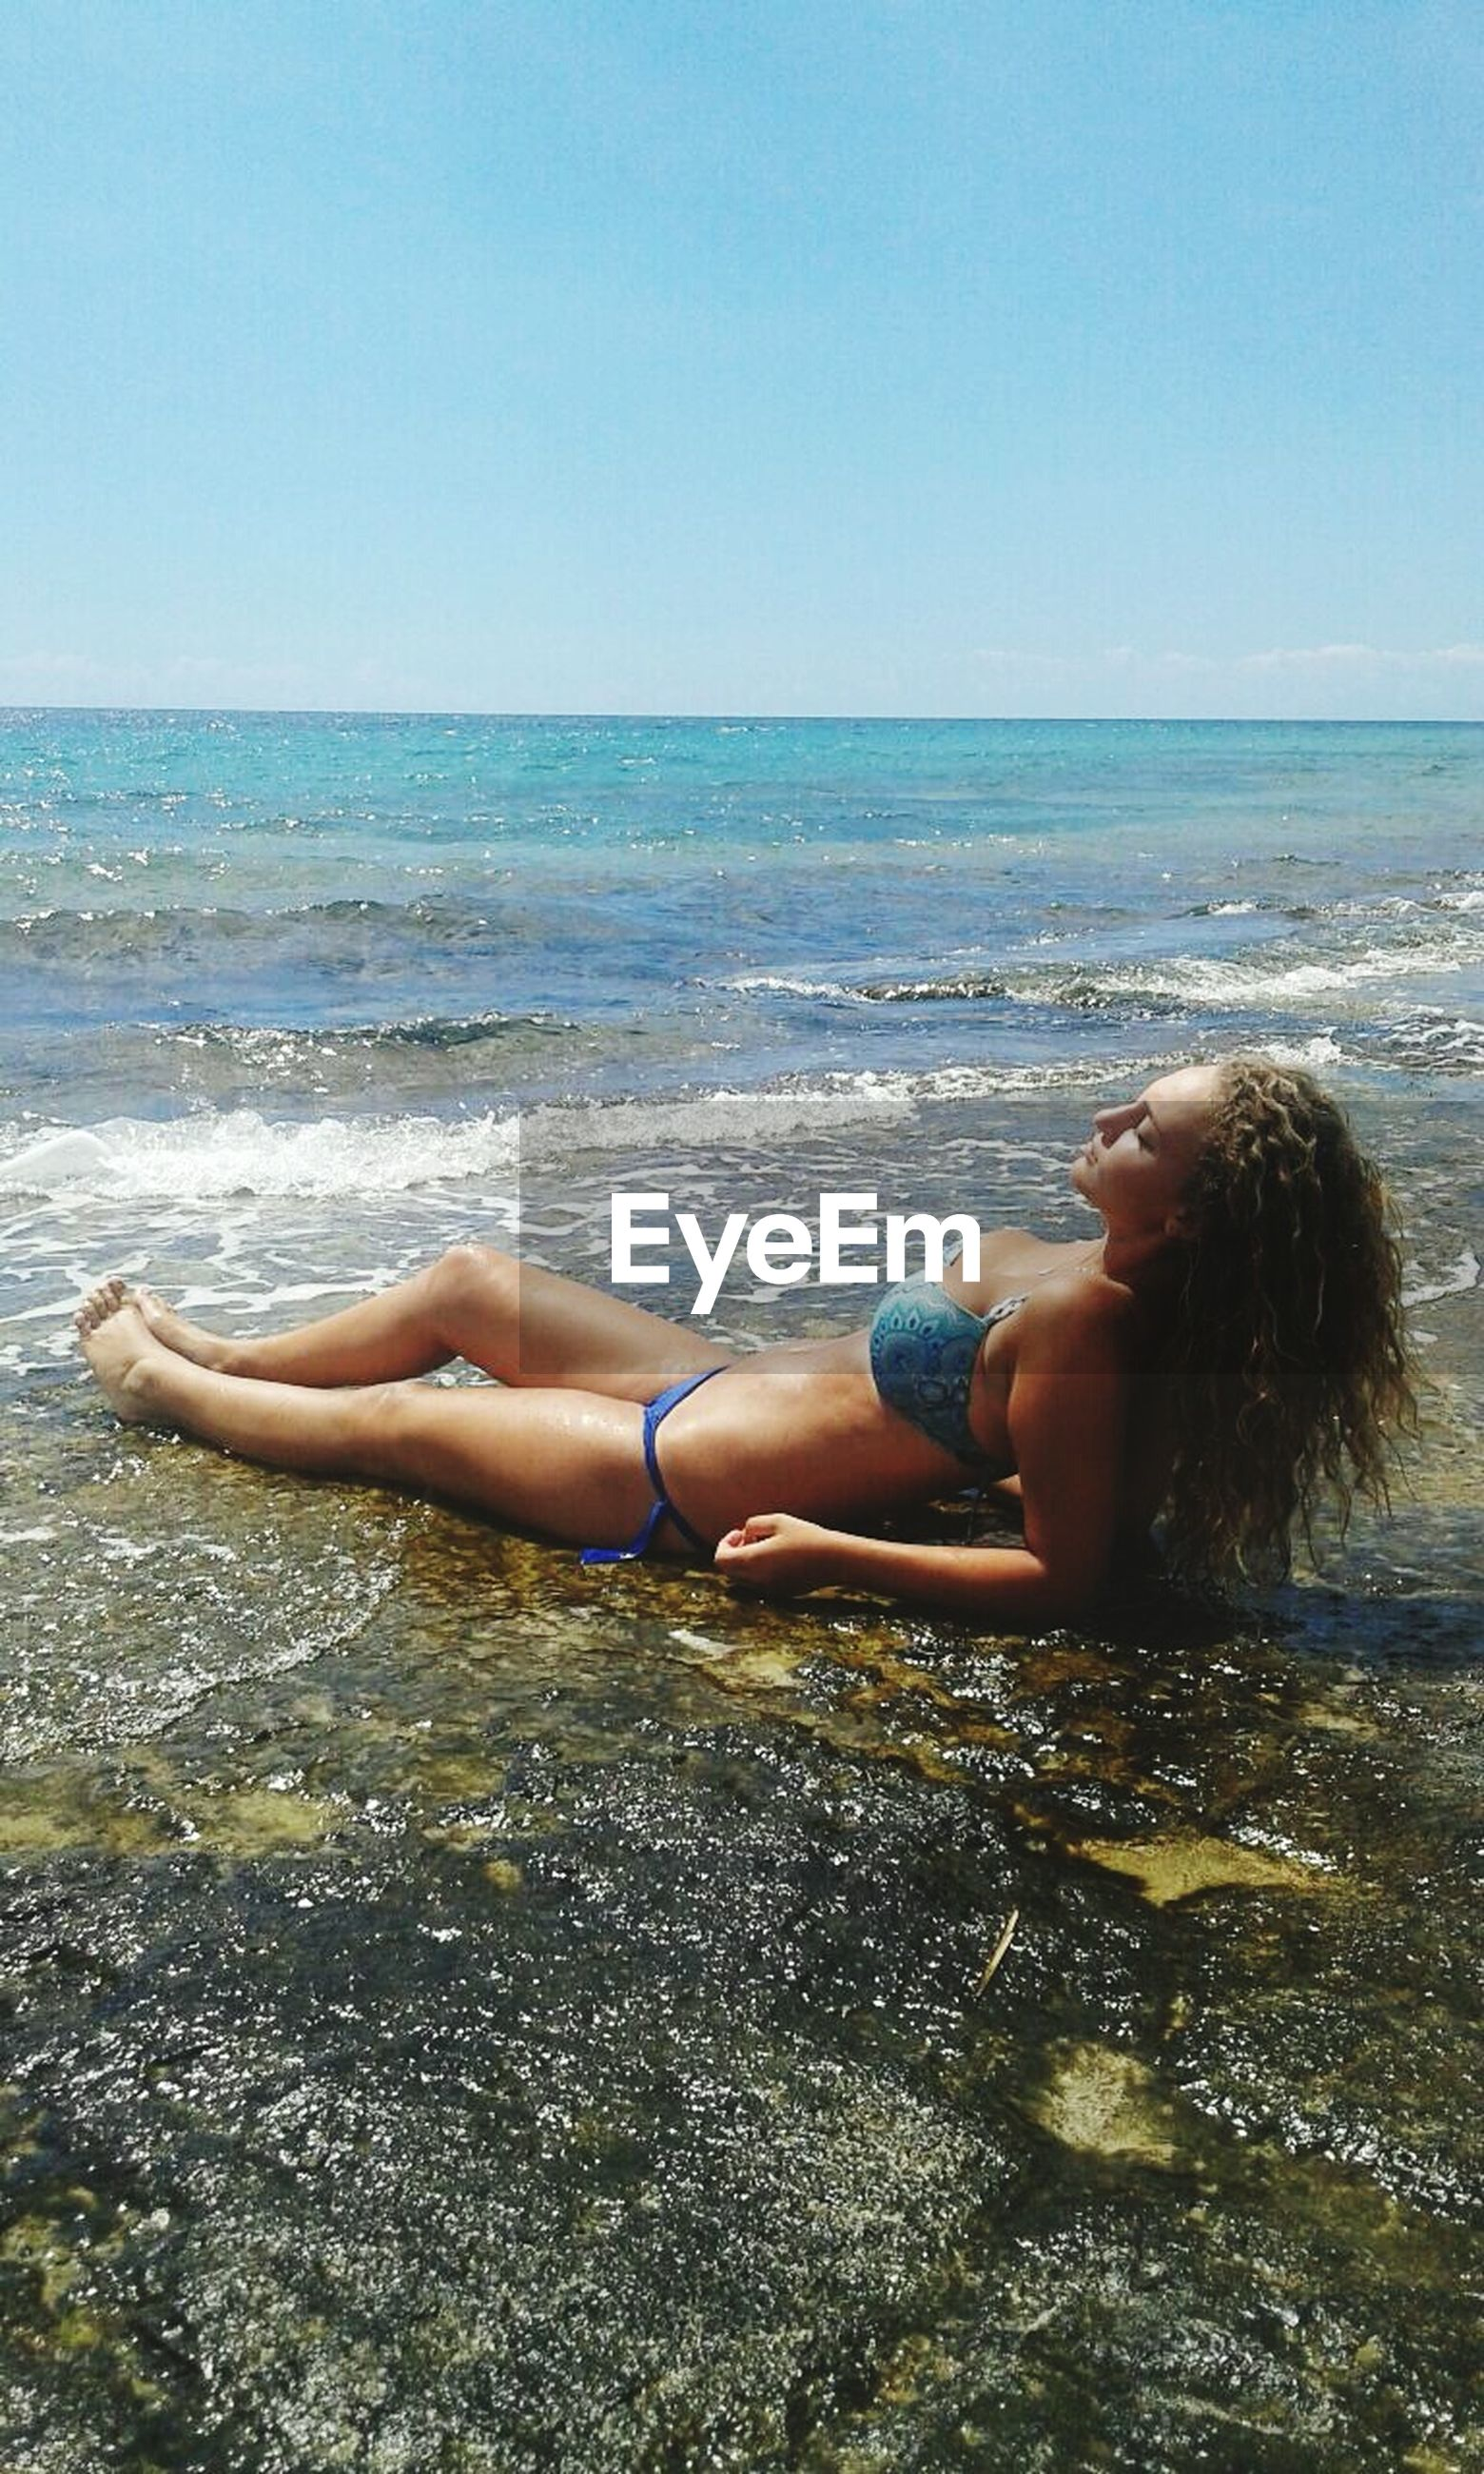 sea, horizon over water, beach, water, lifestyles, leisure activity, young adult, young women, shore, relaxation, clear sky, vacations, full length, person, sitting, bikini, sand